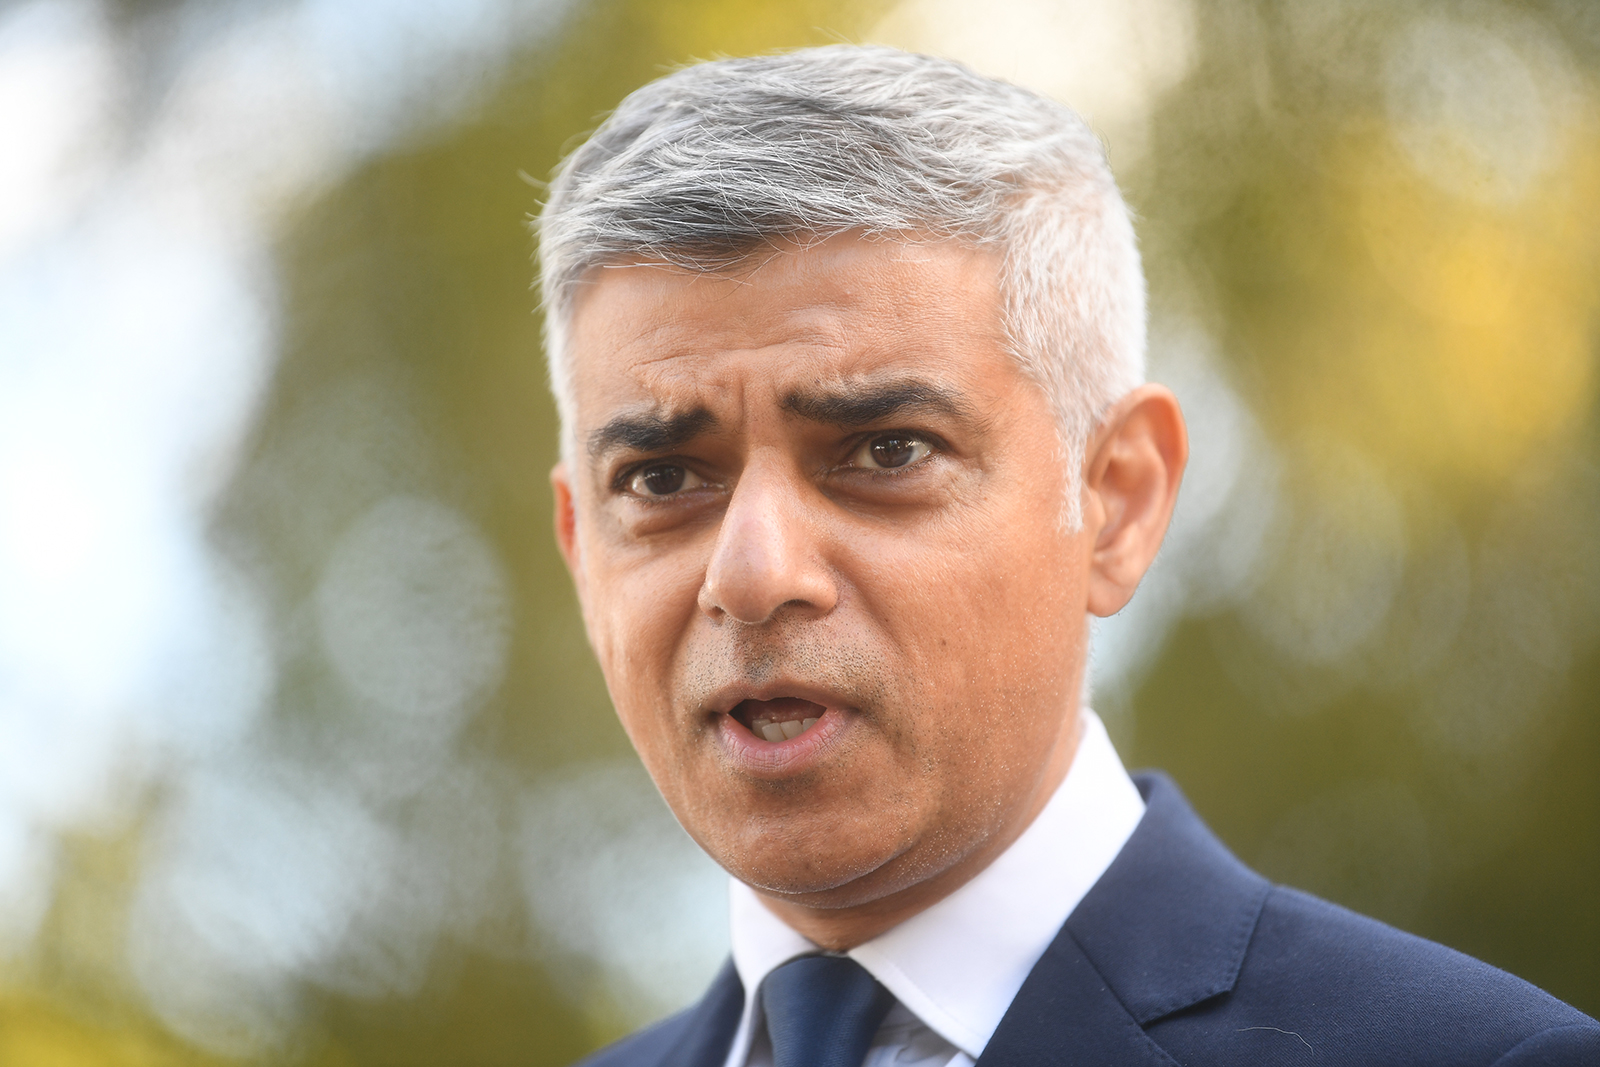 London Mayor Sadiq Khan makes a statement to media in the city on September 25.